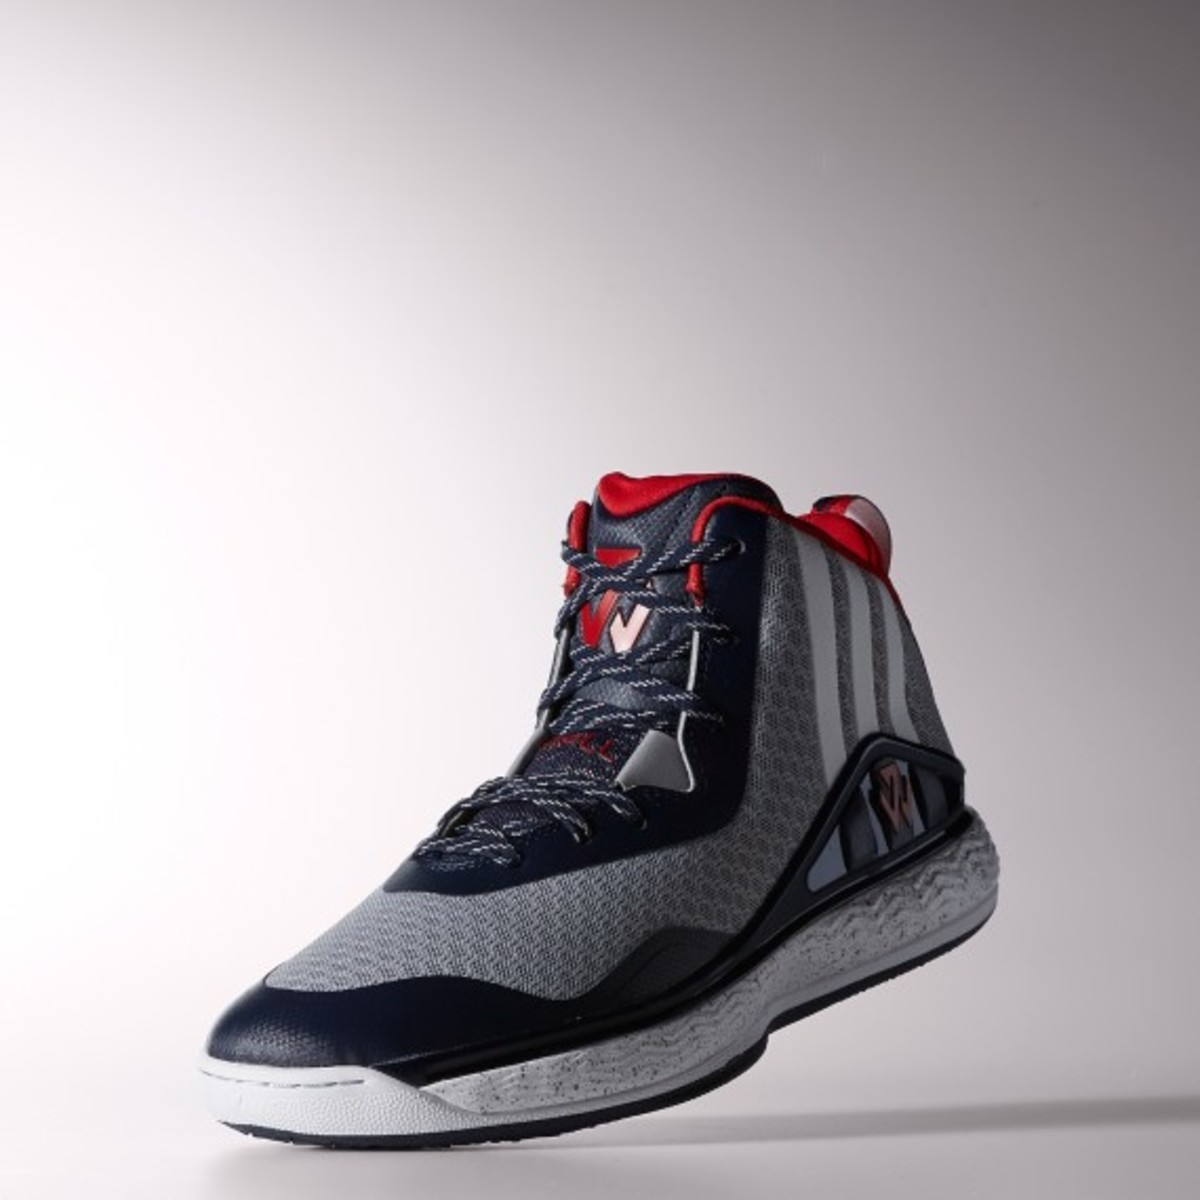 adidas-j-wall-1-signature-basketball-shoe-14